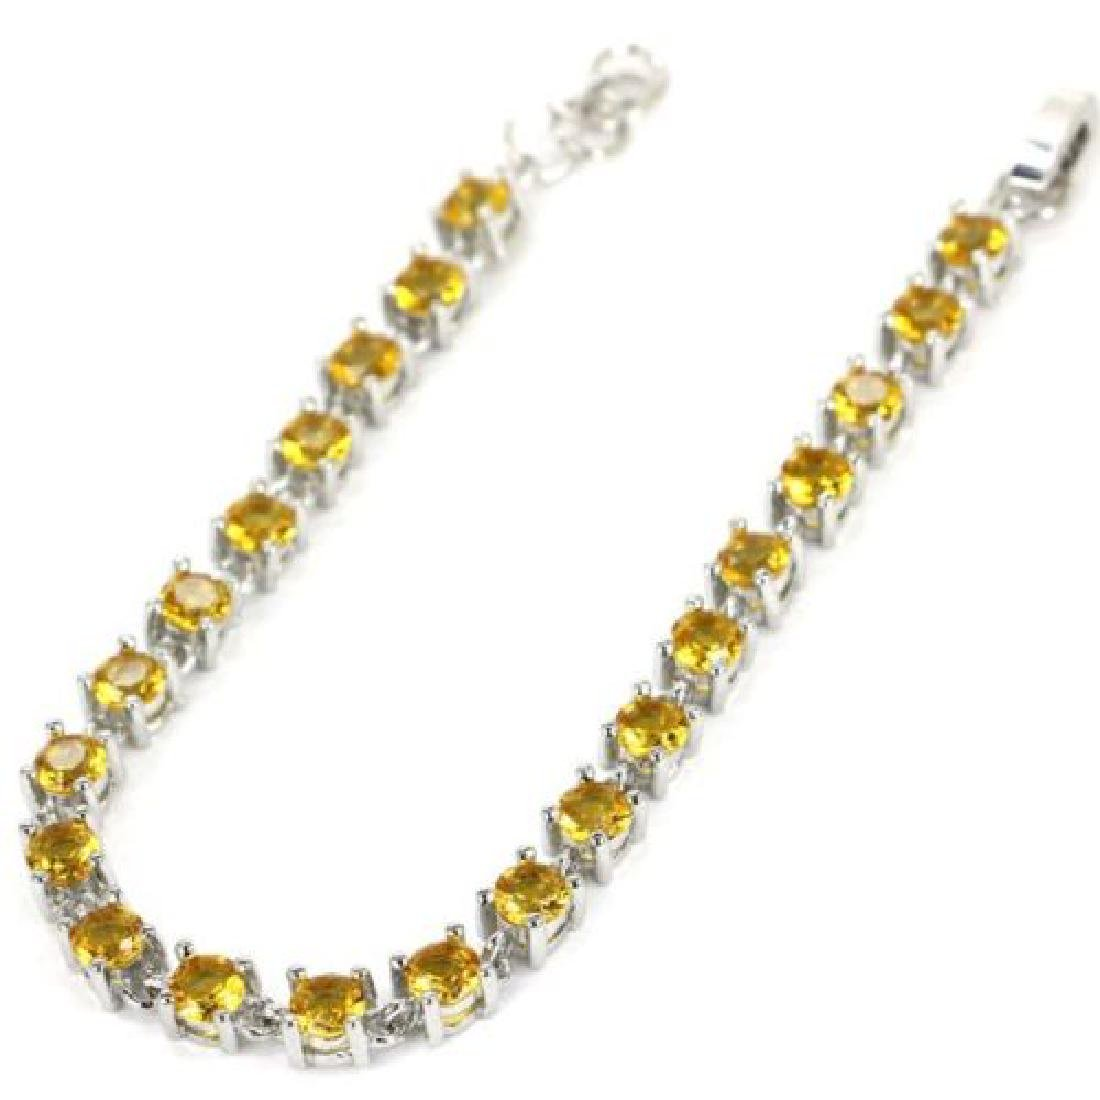 Gorgeous Golden Citrine, White CZ Silver Bracelet - 2